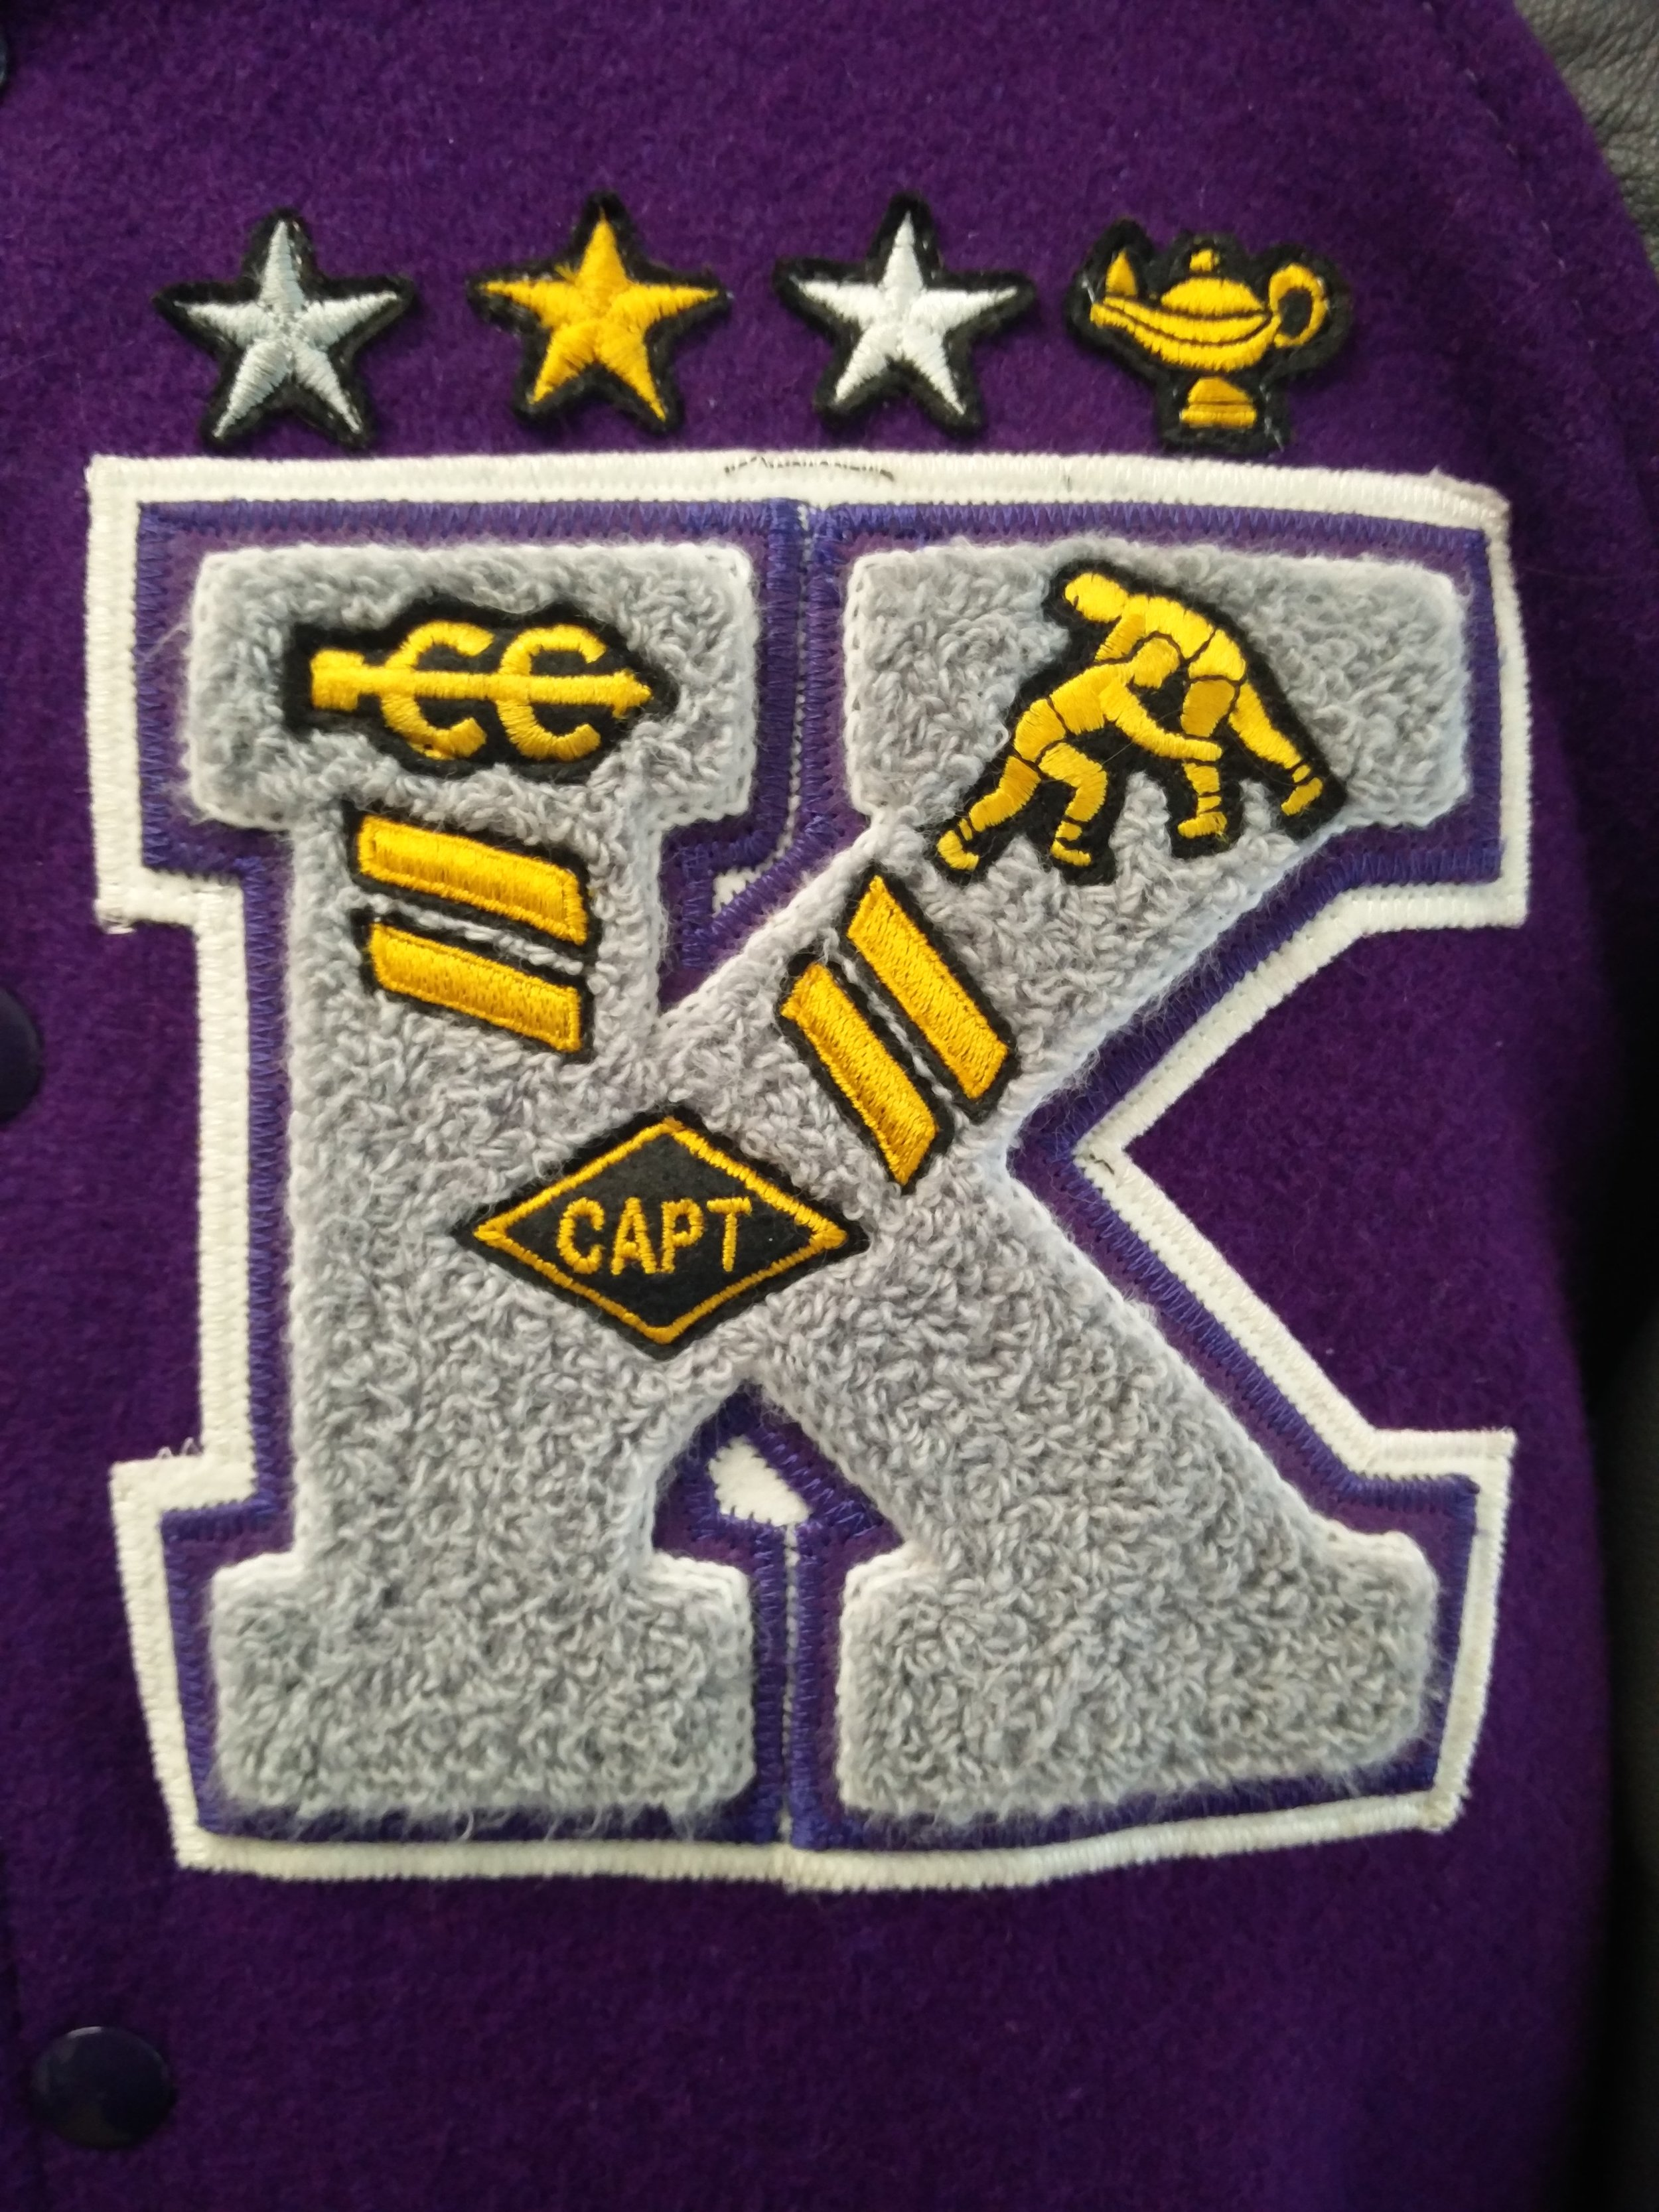 School Letter - The first letter of your school's name. Inlays and corresponding bars are placed on and around it to indicate programs you have lettered in